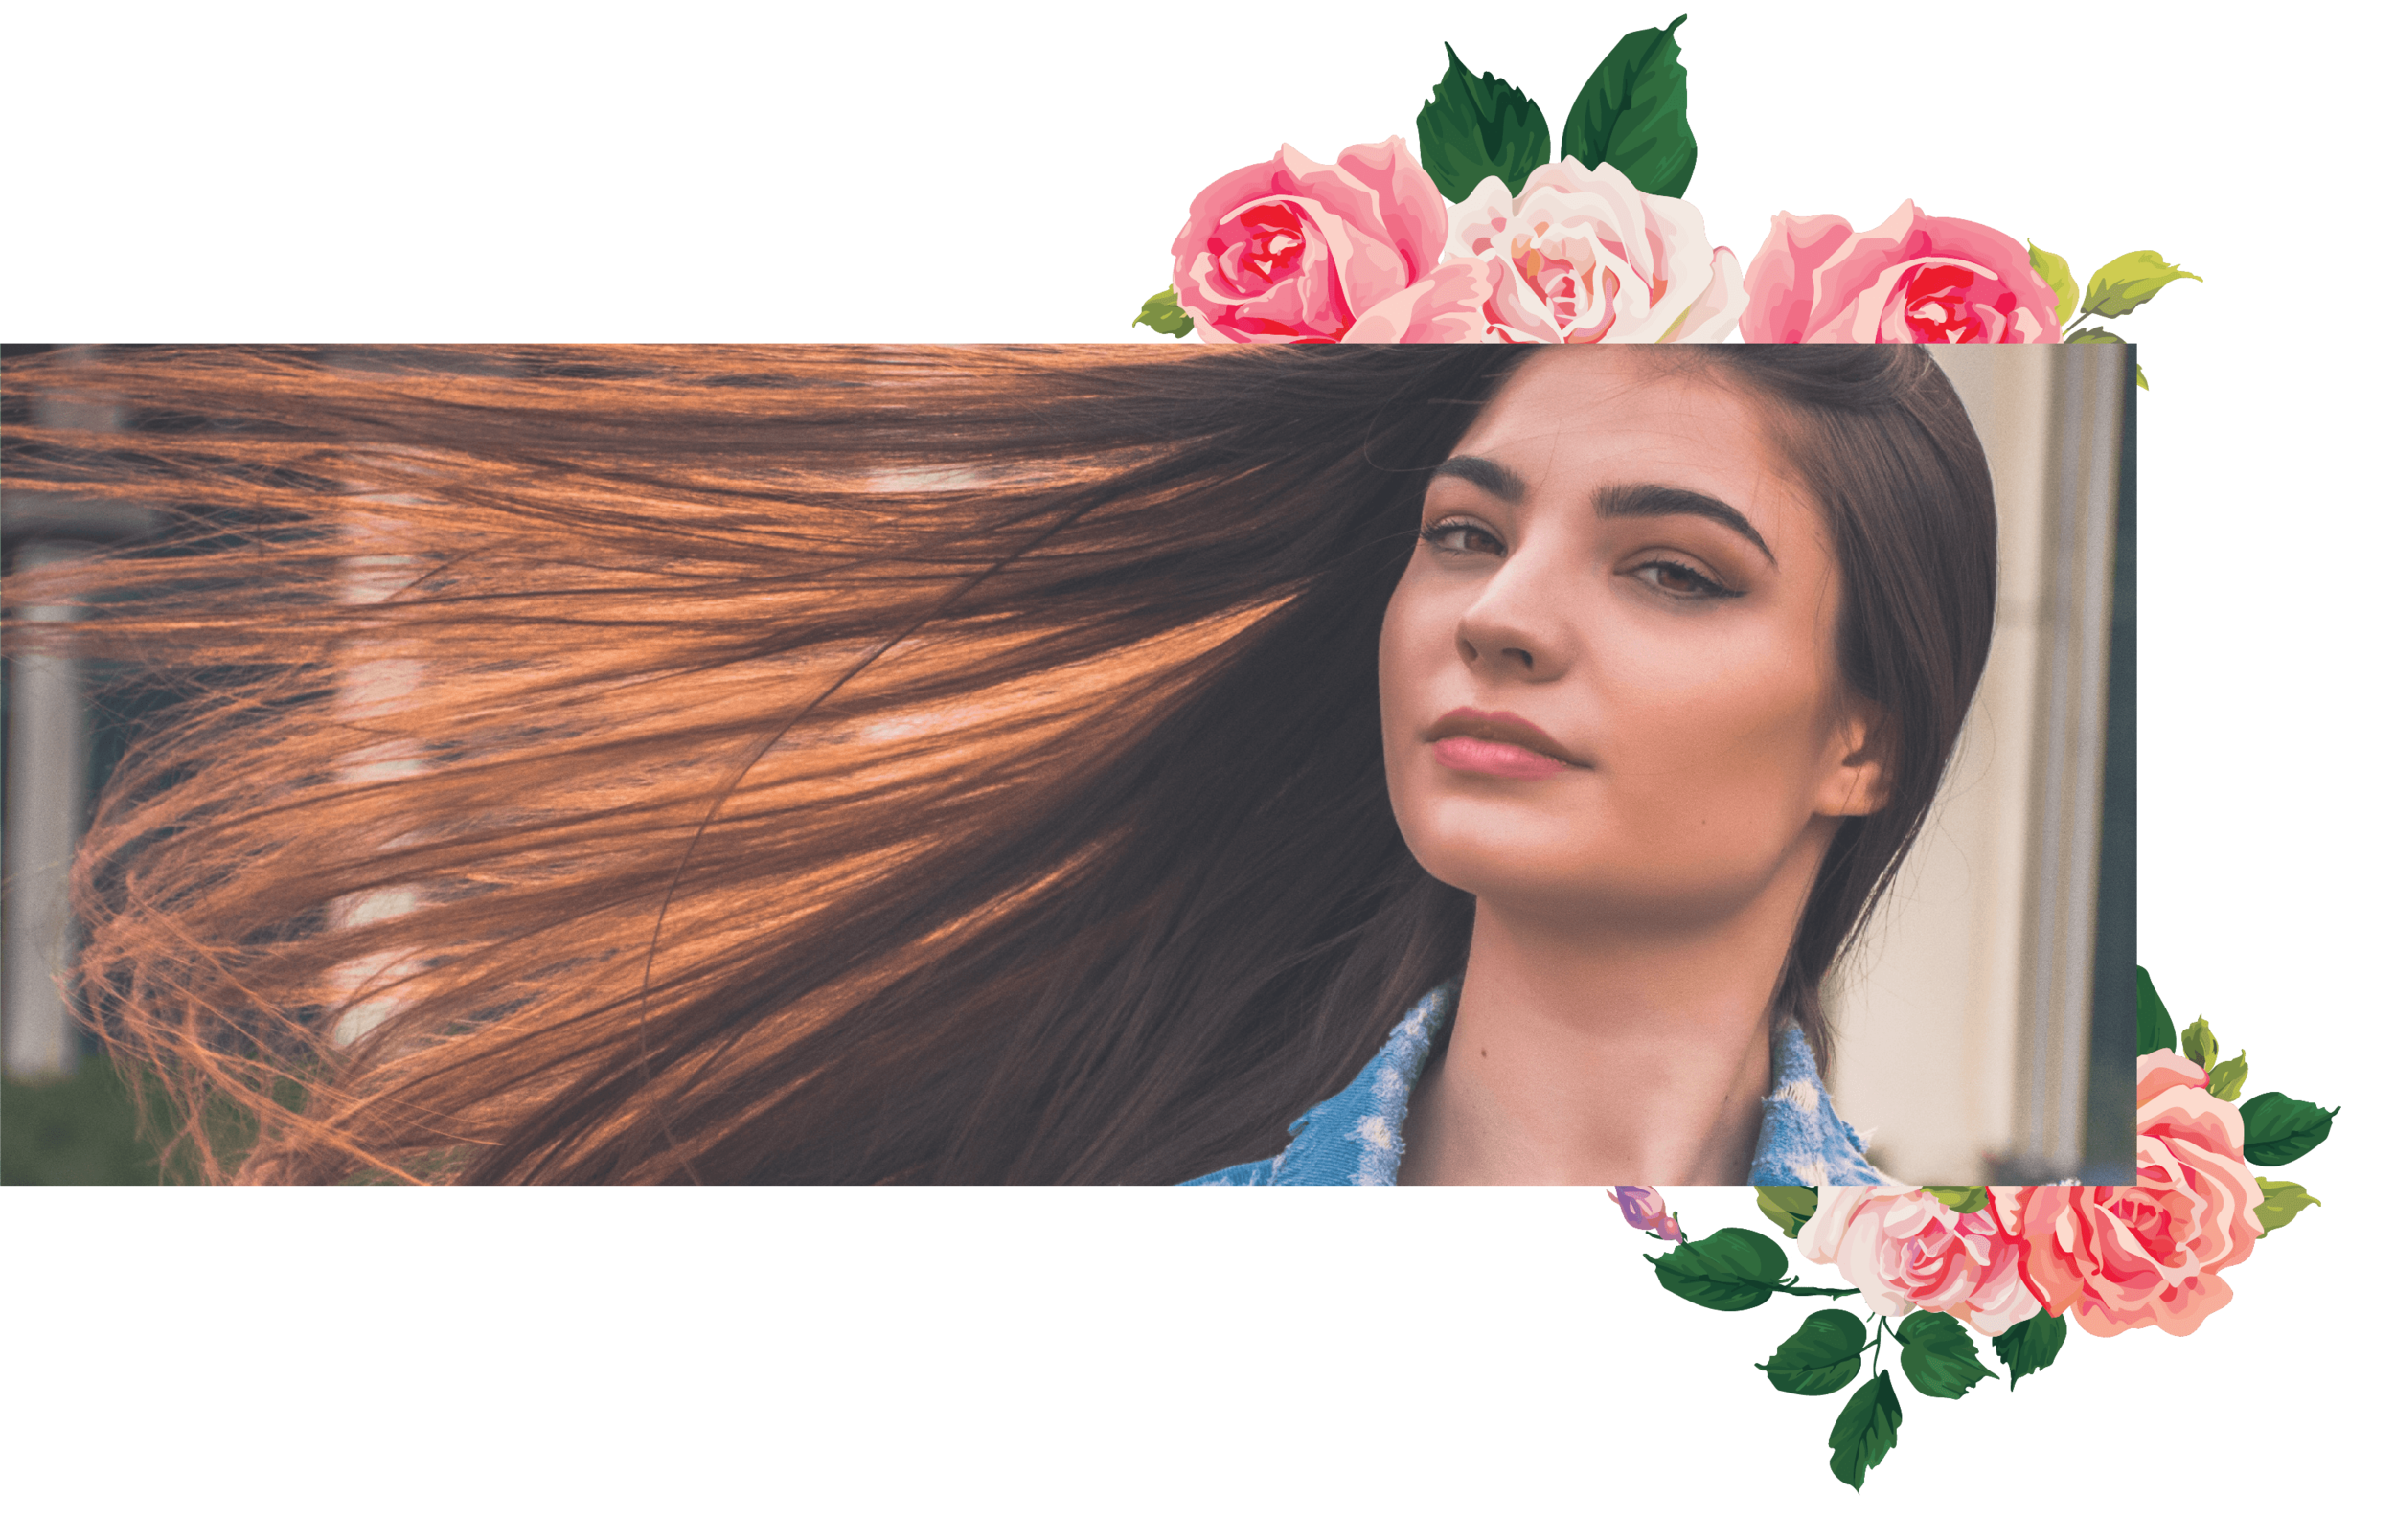 The Salon - Couture Beauty Hair Extension Salon represents Lindsey Graham's exquisite talents as an extension specialist and is located inside Glamour Salon.